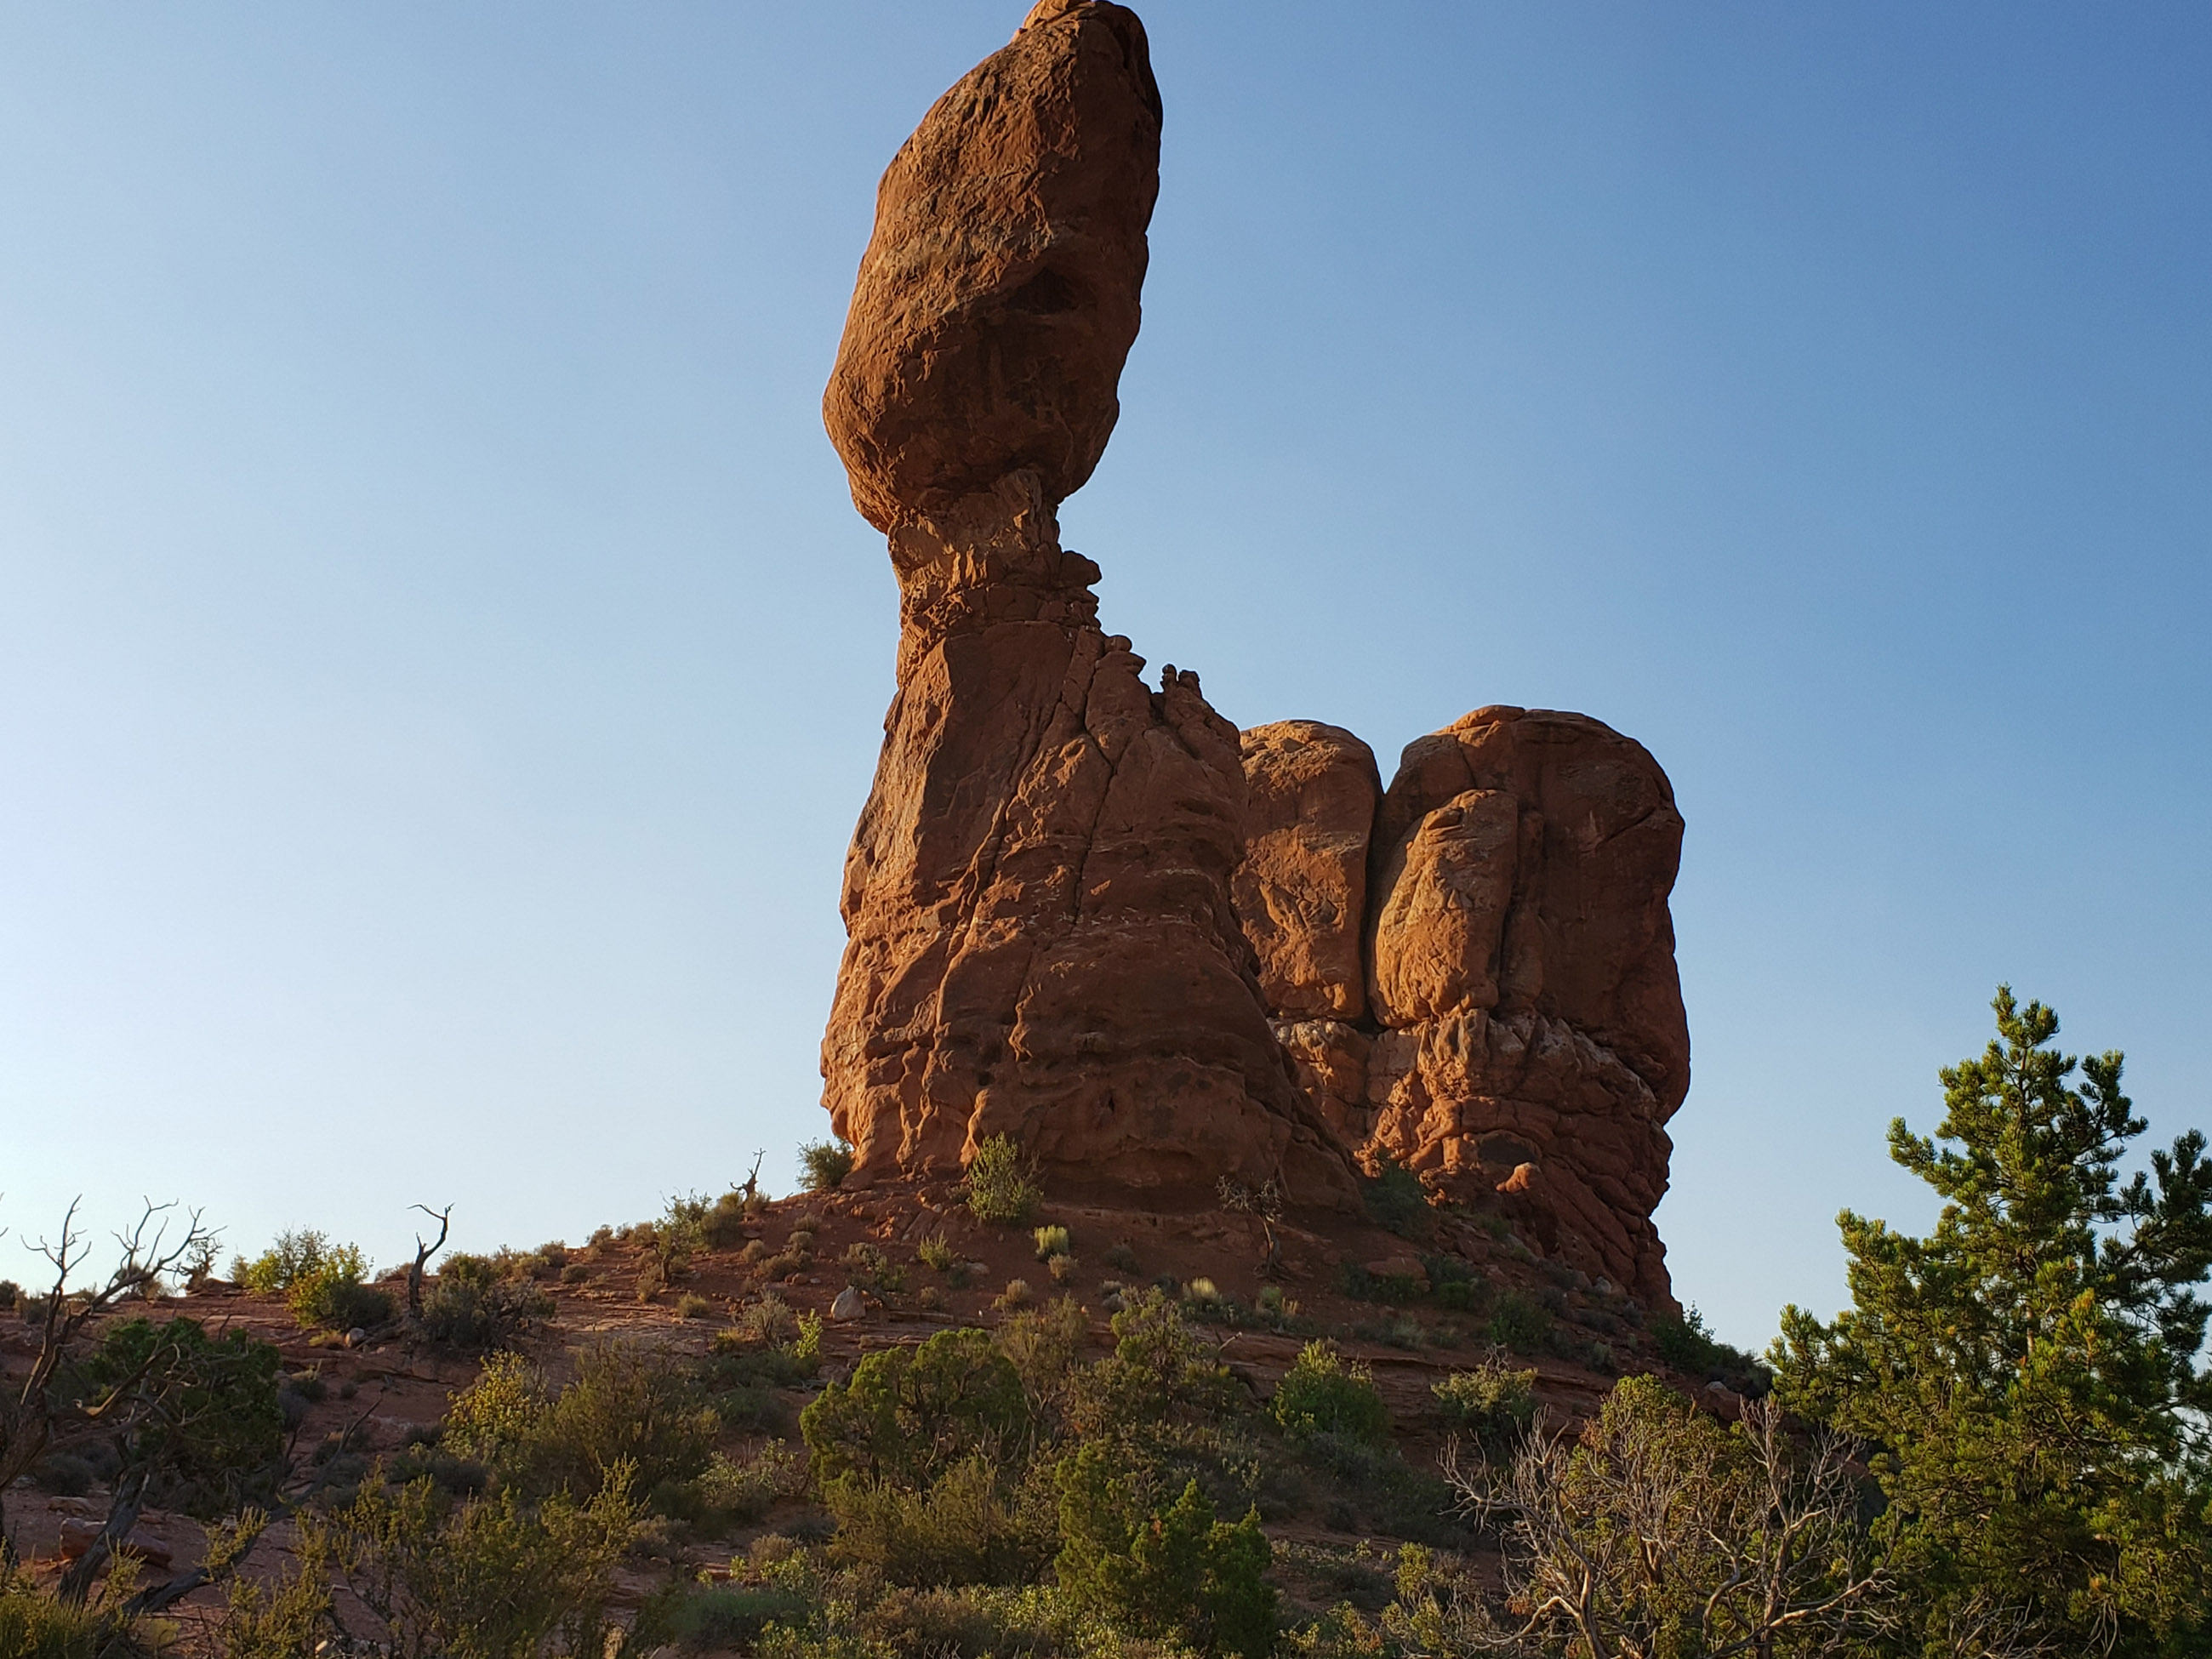 Eroded rock formation known as Balance Rock in Arches National Park